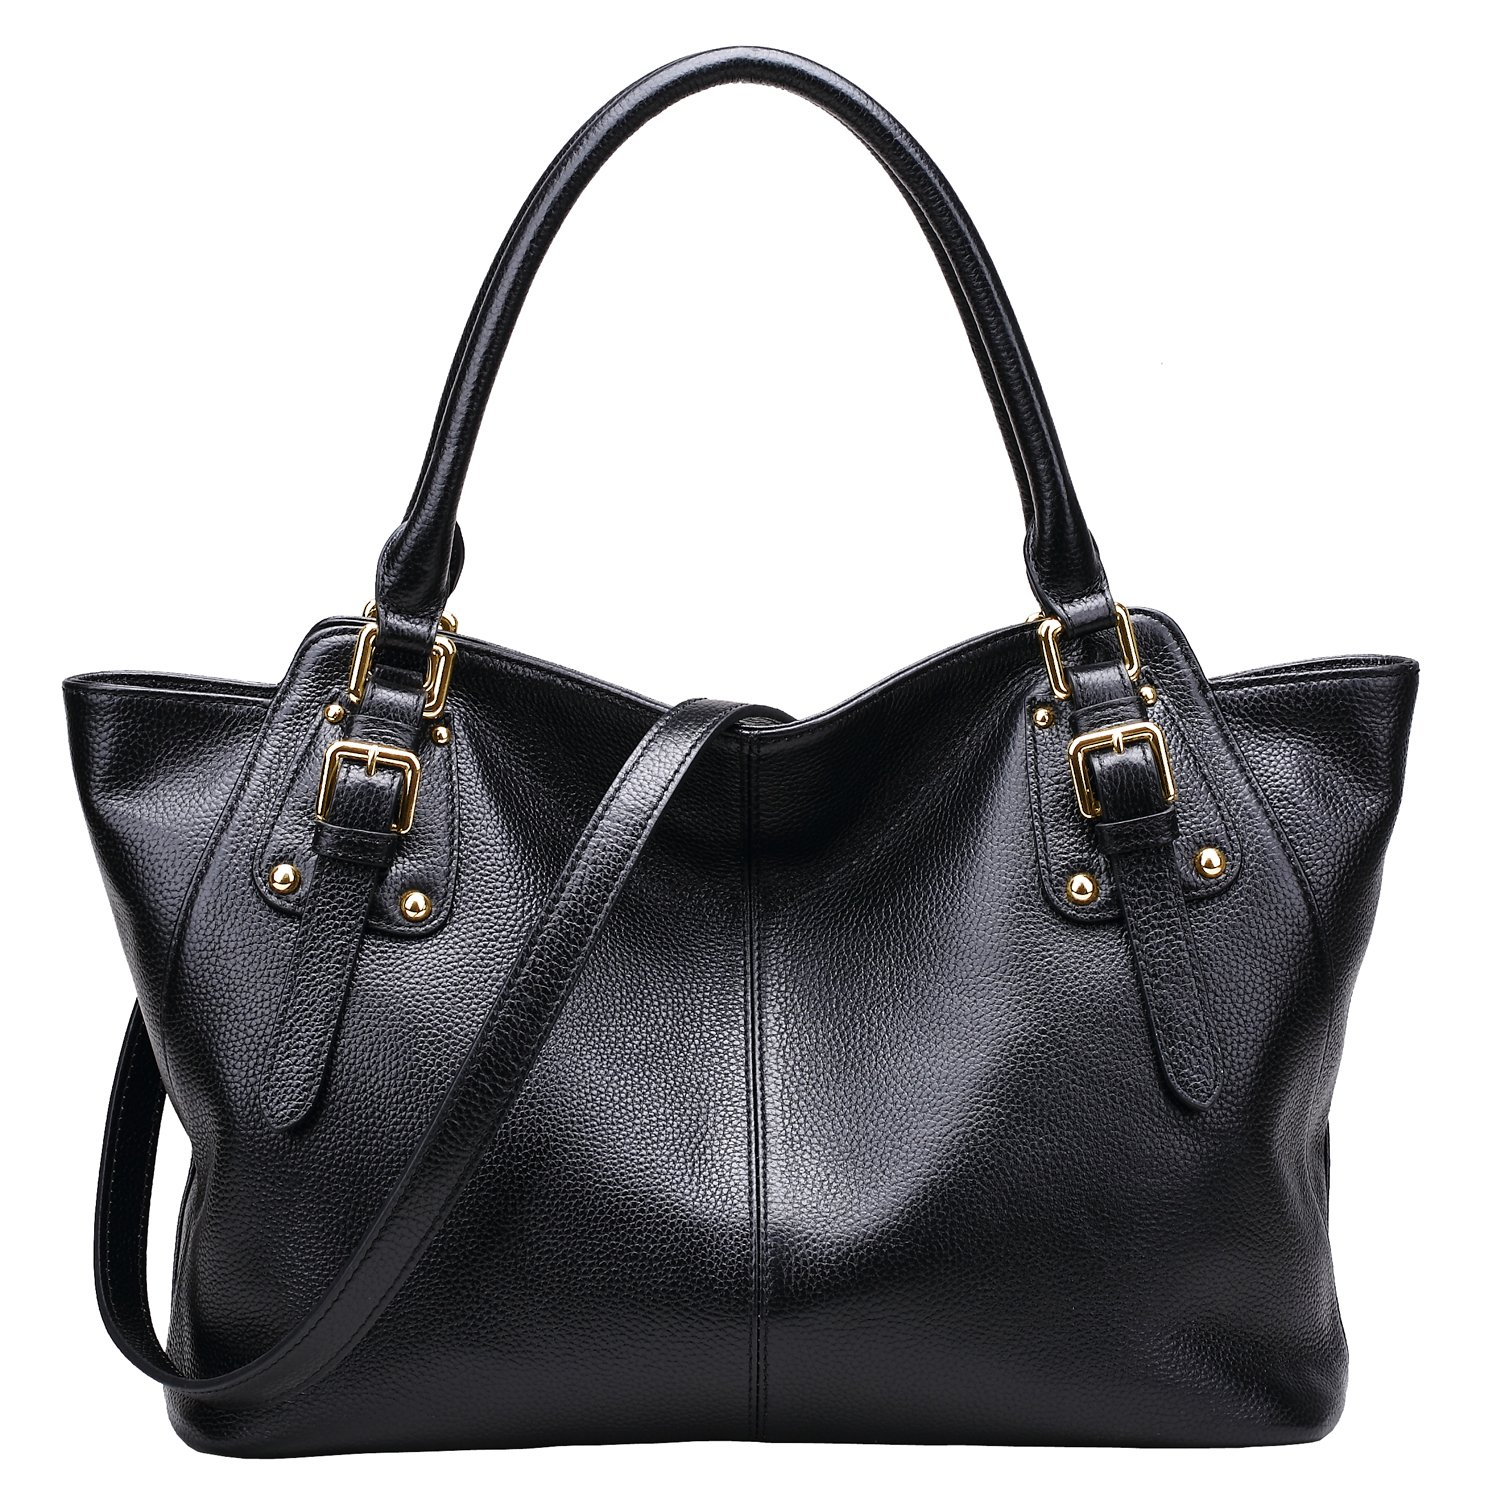 BIG SALE-AINIMOER Womens Leather Shoulder Bag Vintage Handbags ...